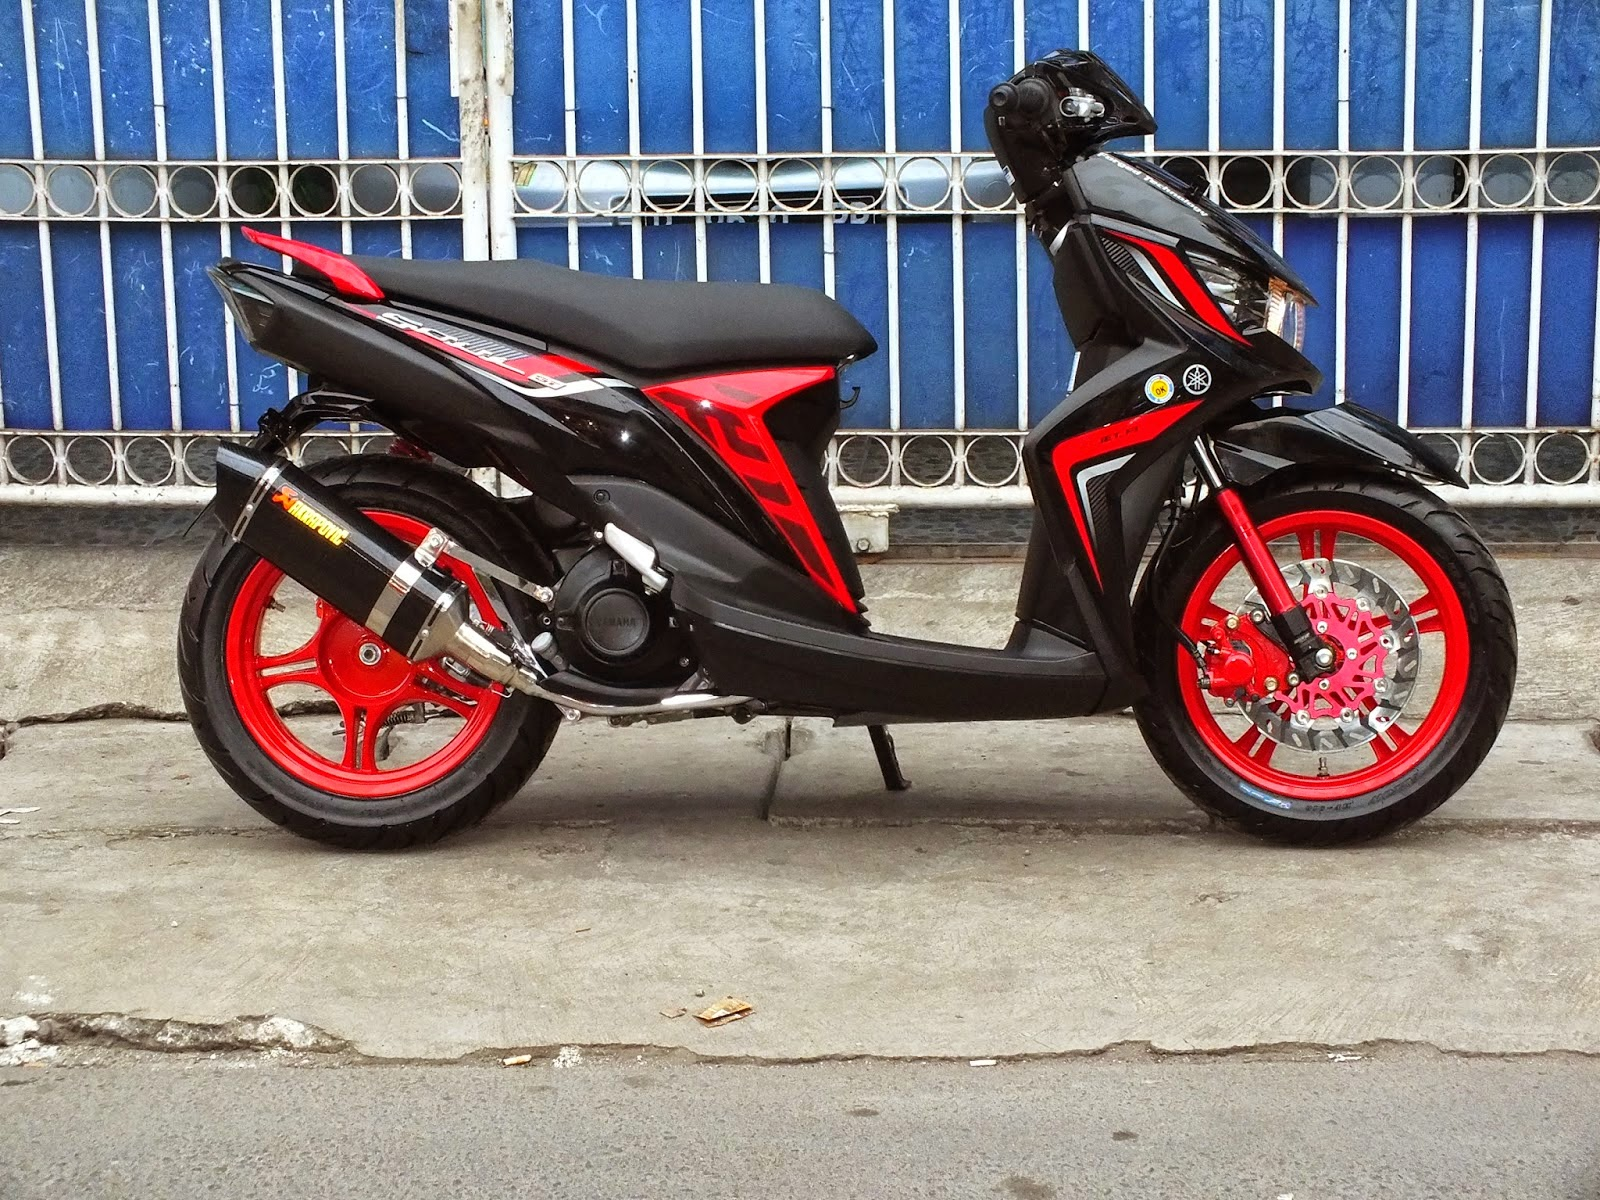 88 Modifikasi Scoopy Fi Velg 14 Kumpulan Modifikasi Motor Scoopy